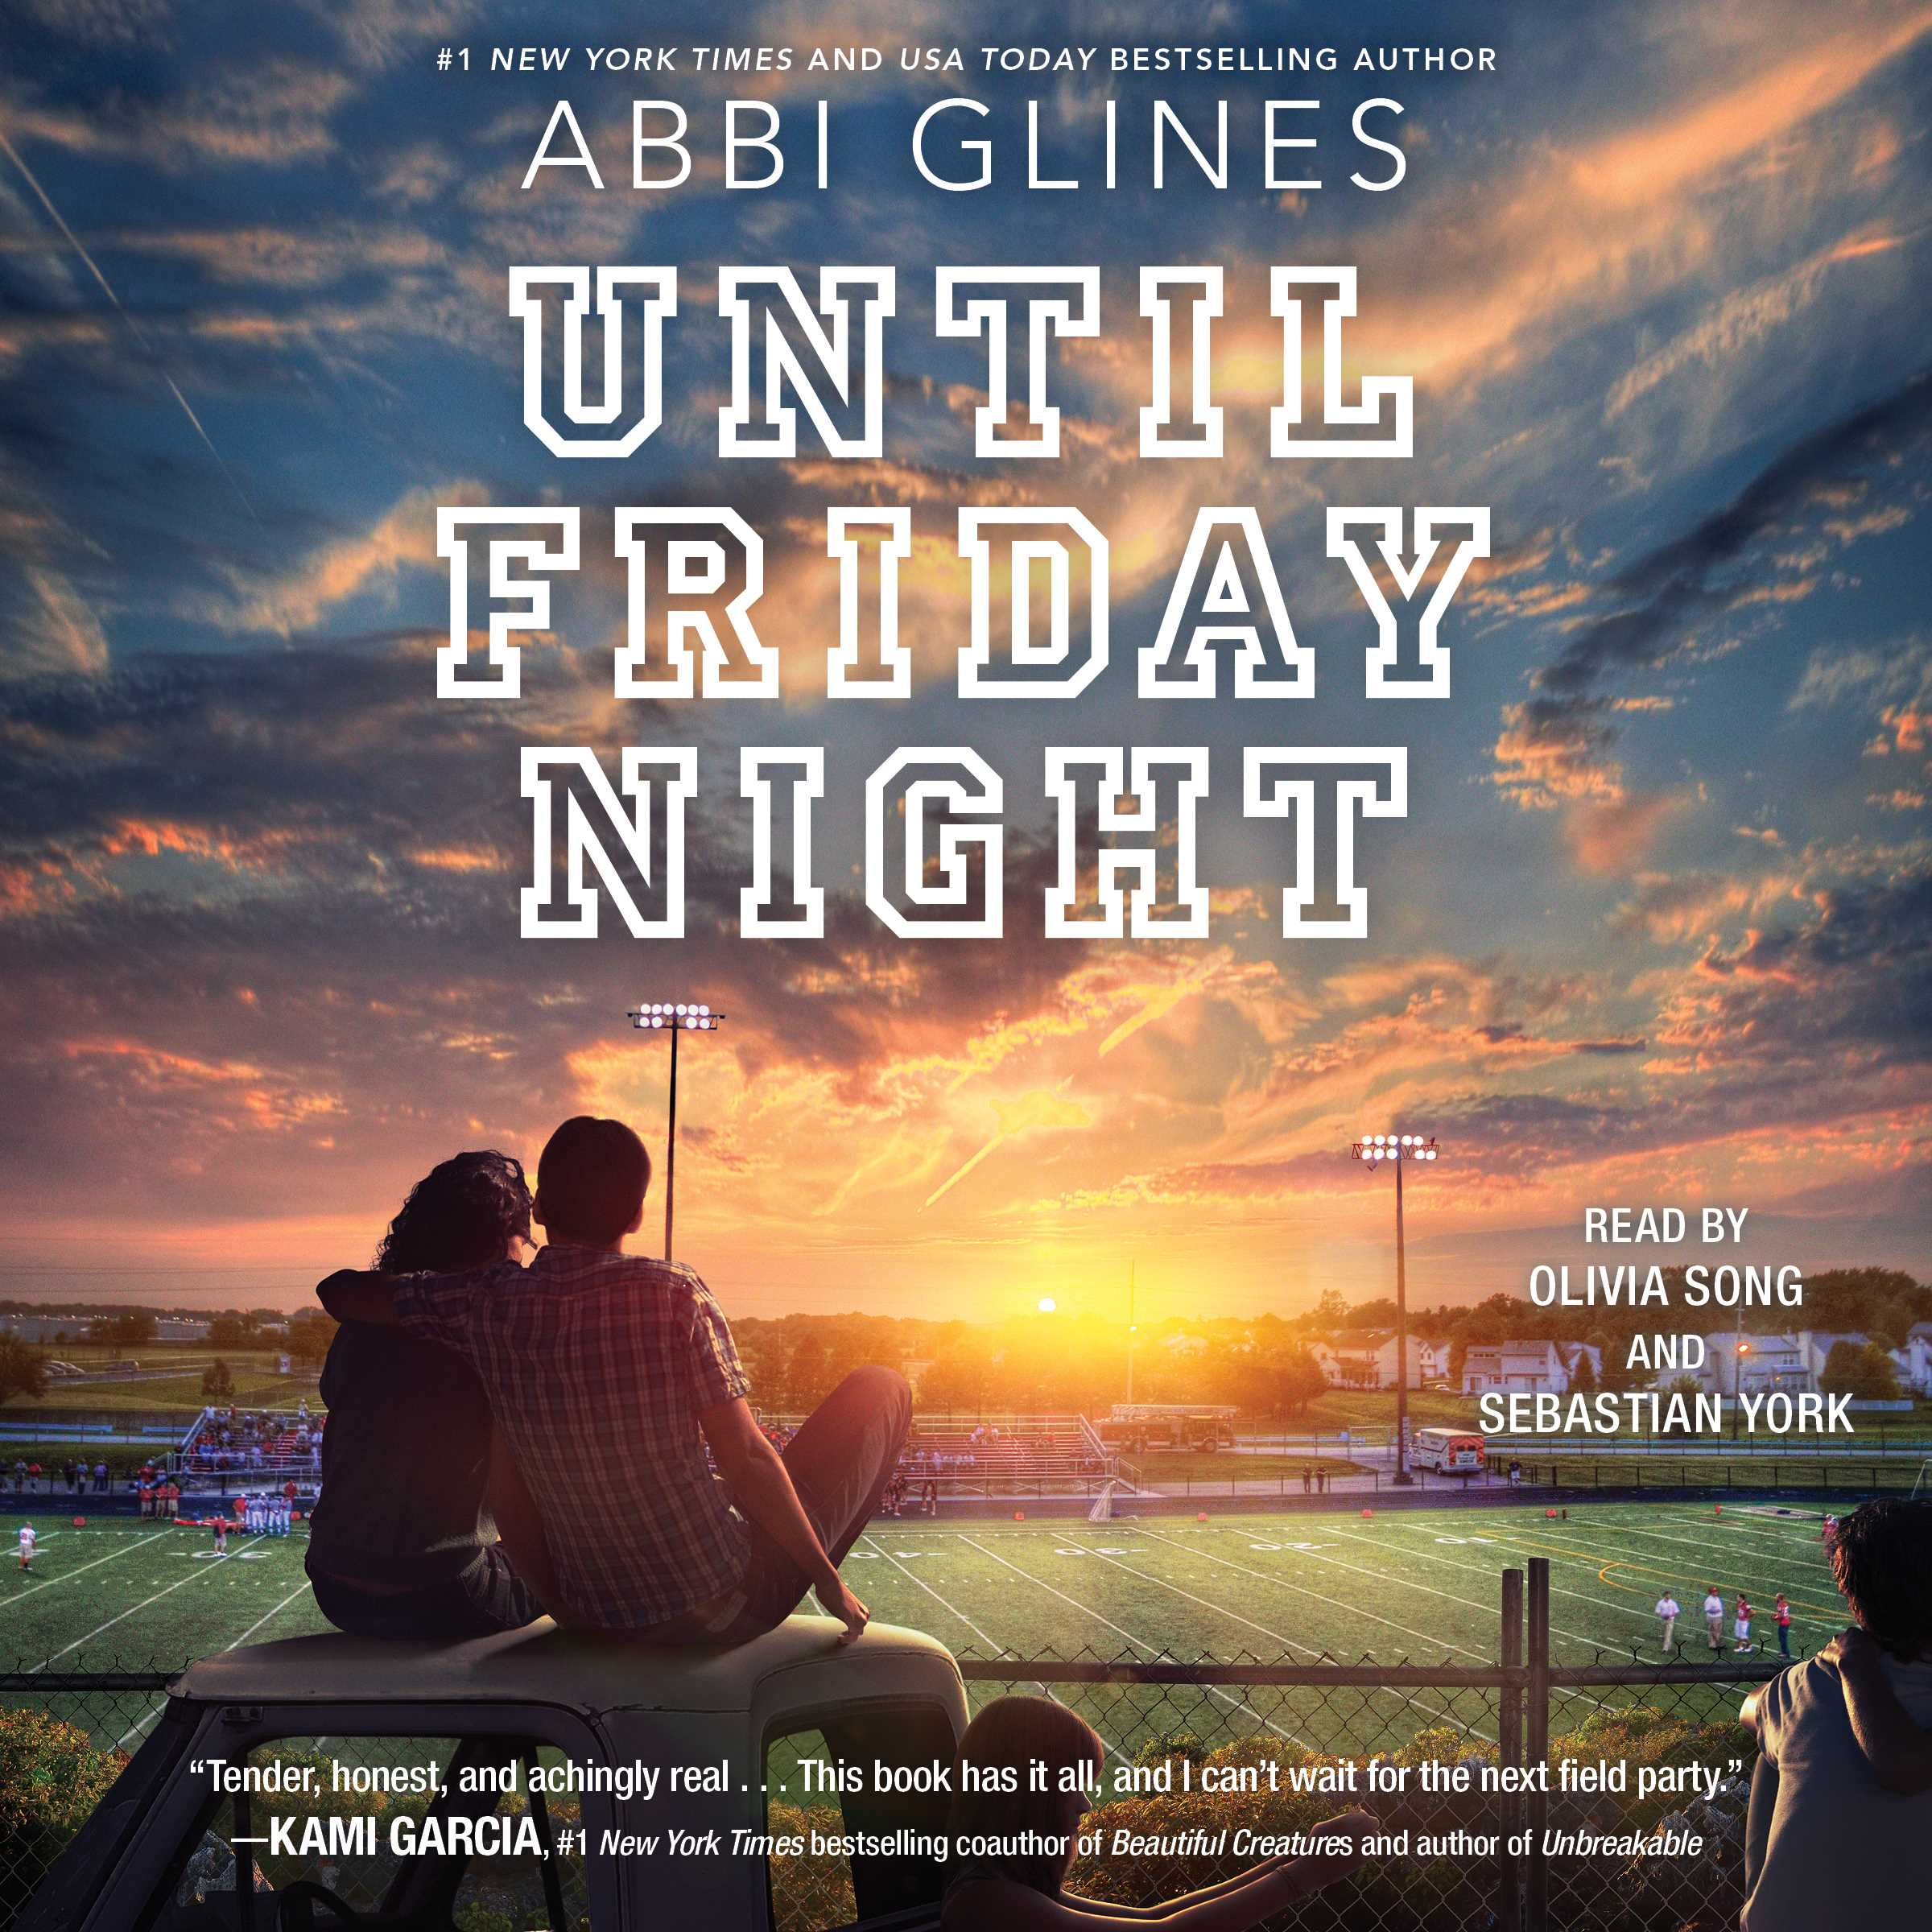 Friday Night Lights Book Chapter Summary